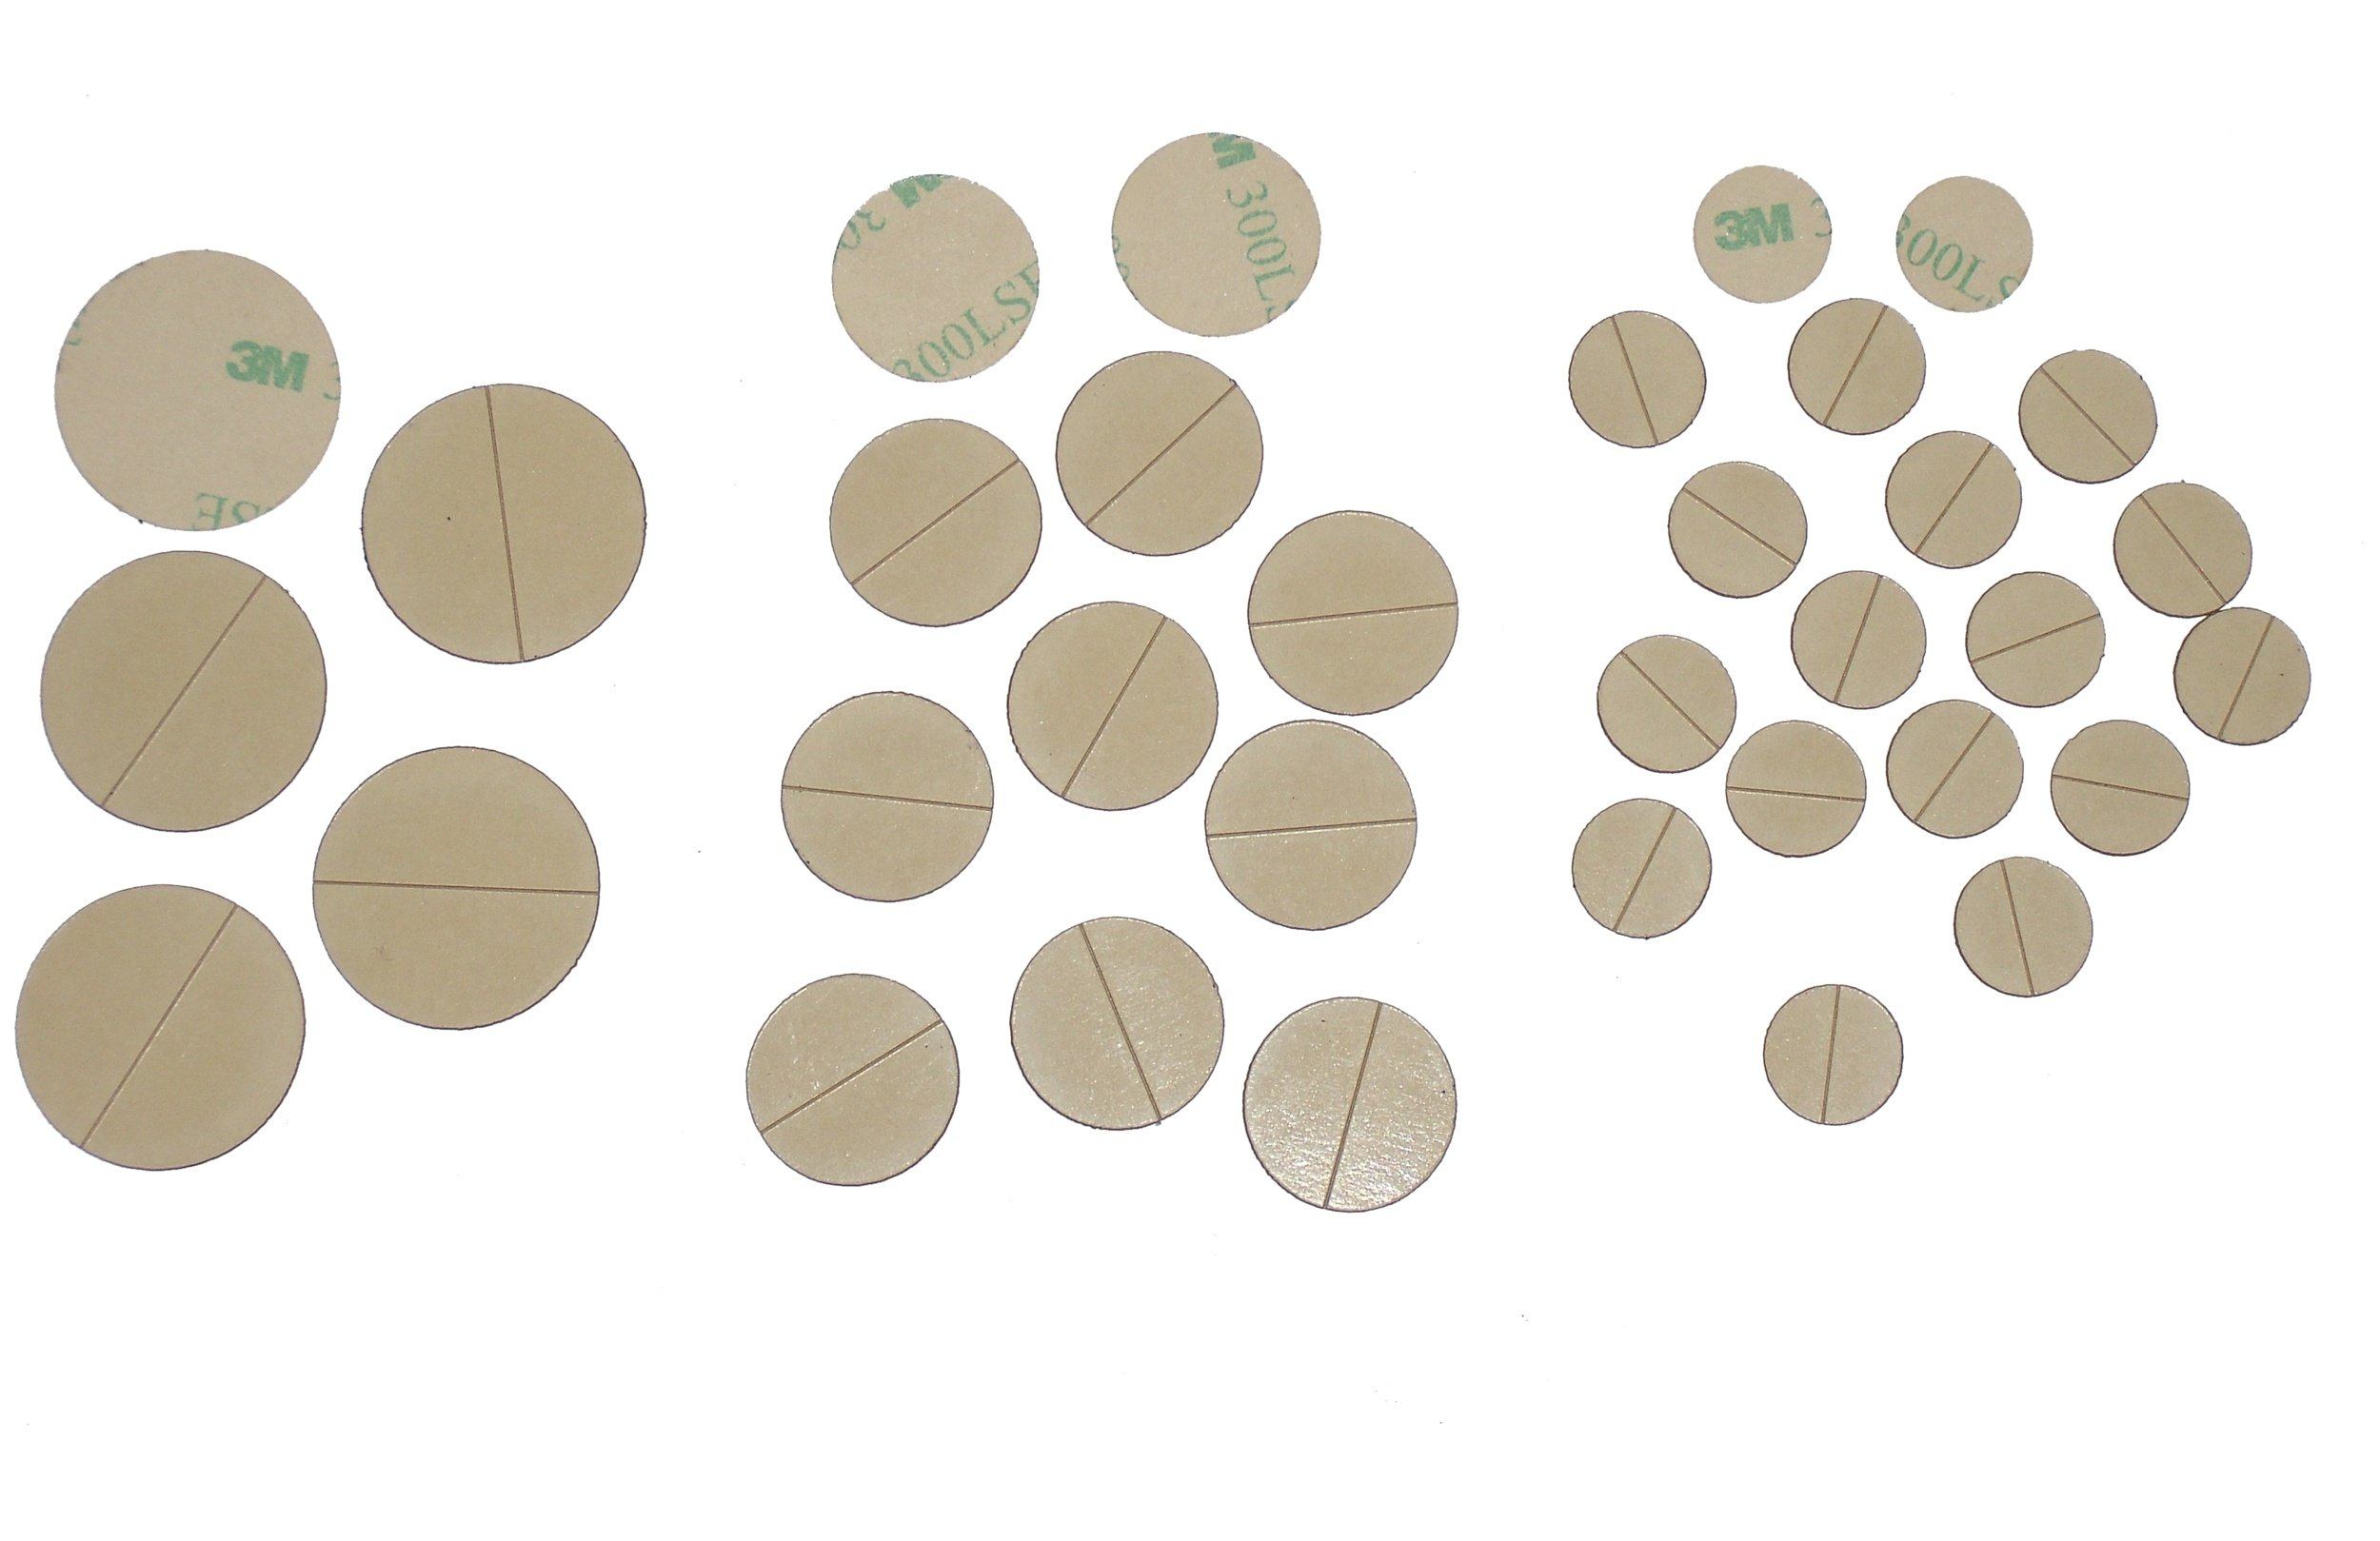 Disks/circles laser-cut from 3M 300LSE industrial-strength, ultra high-tack double-sided adhesive. 20 disks, 2.0'' diameter [disks-2.0-20]